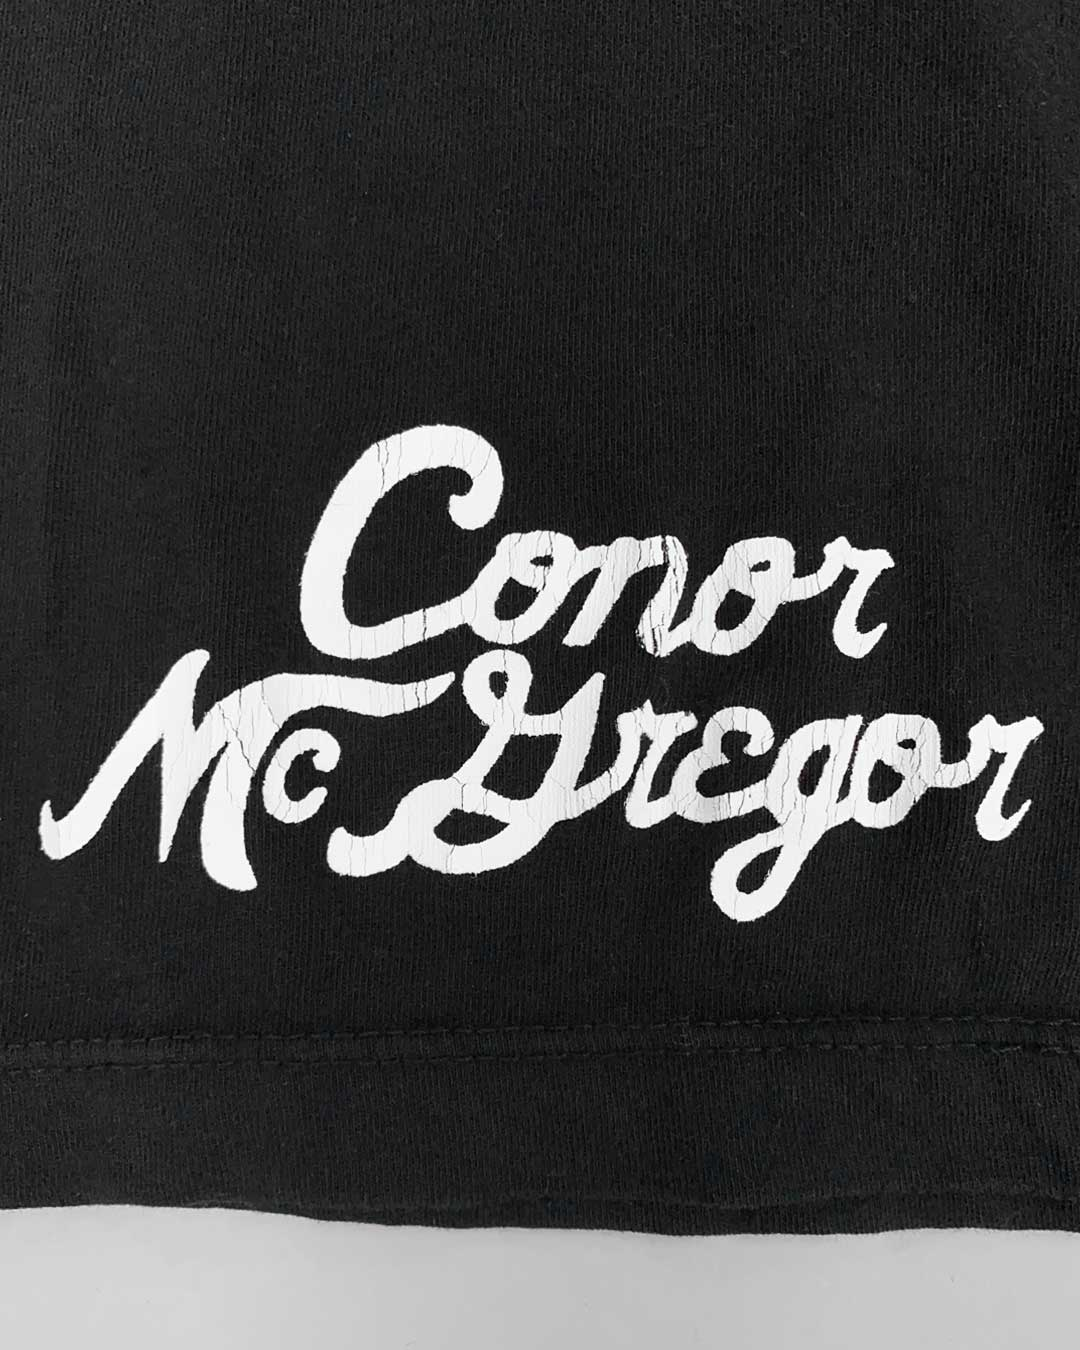 Conor McGregor CM12 Tee - Copasetic Clothing Ltd. dba Roots of Fight